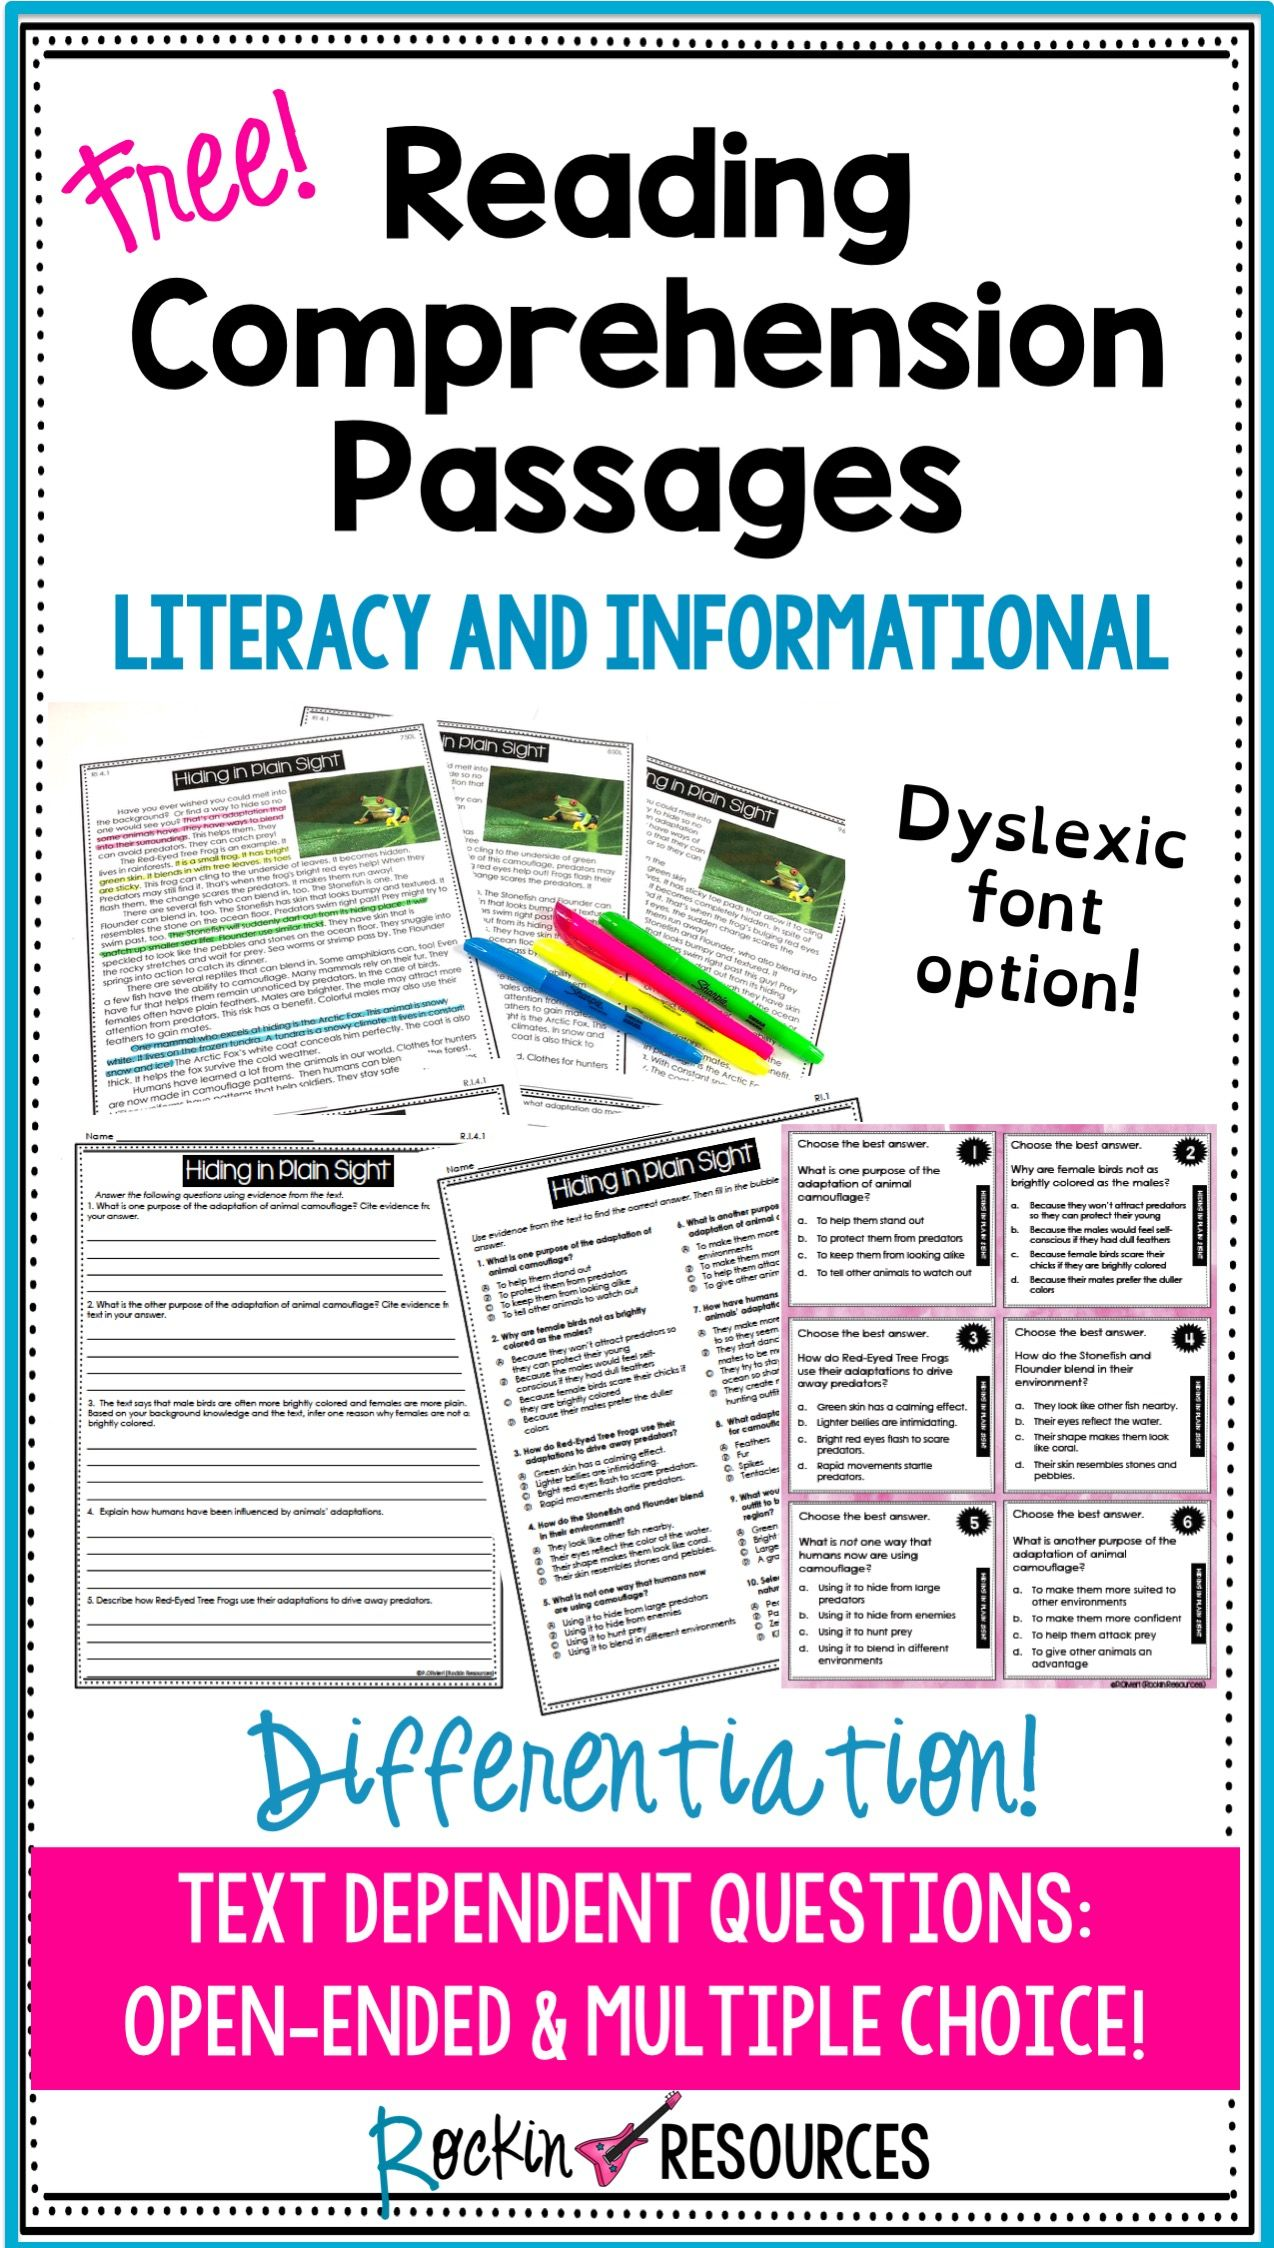 Reading Comprehension Passages and Questions Free for